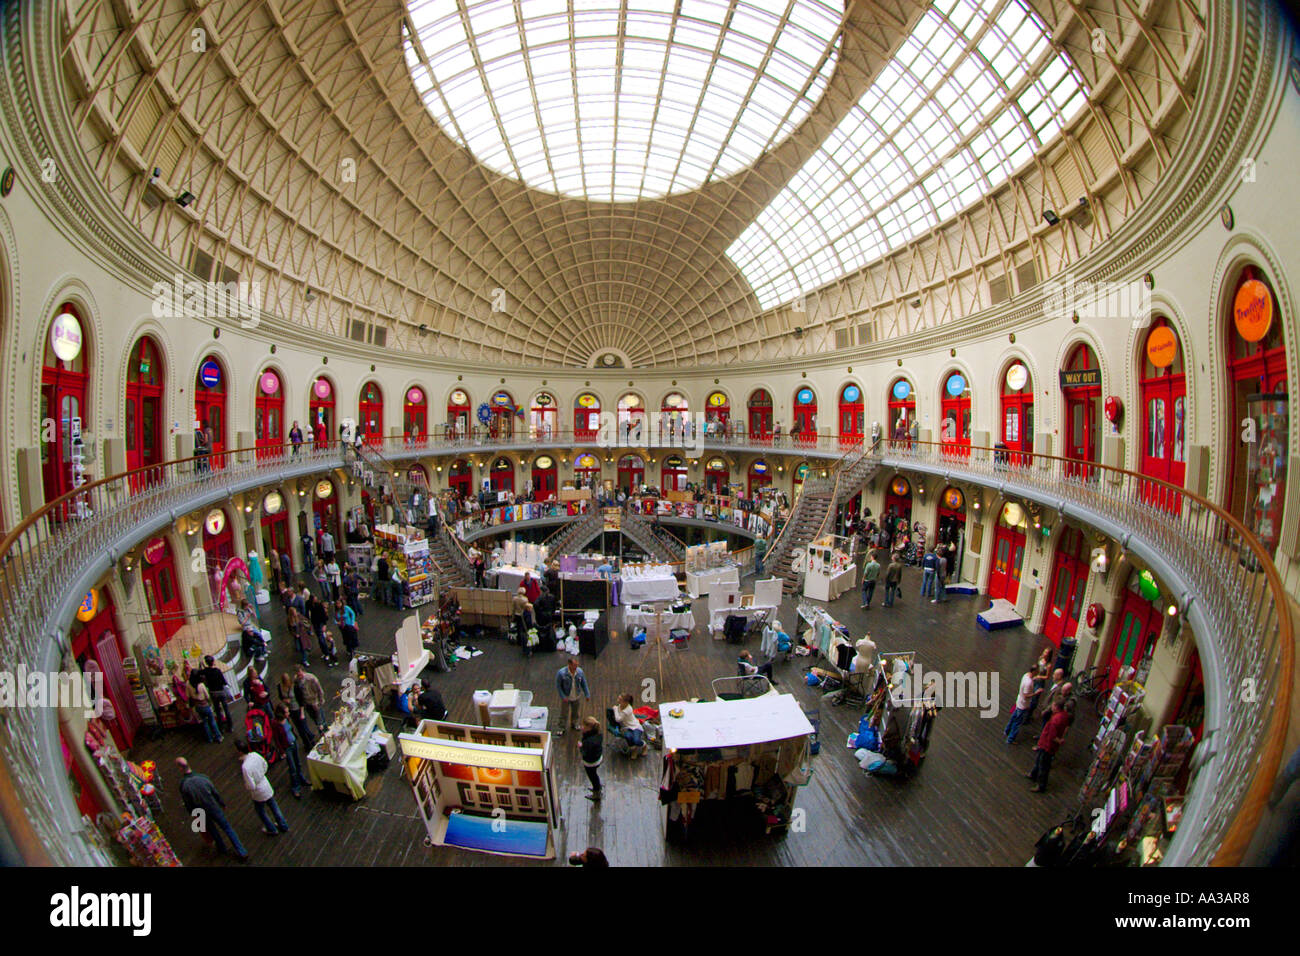 Leeds corn exchange shopping centre